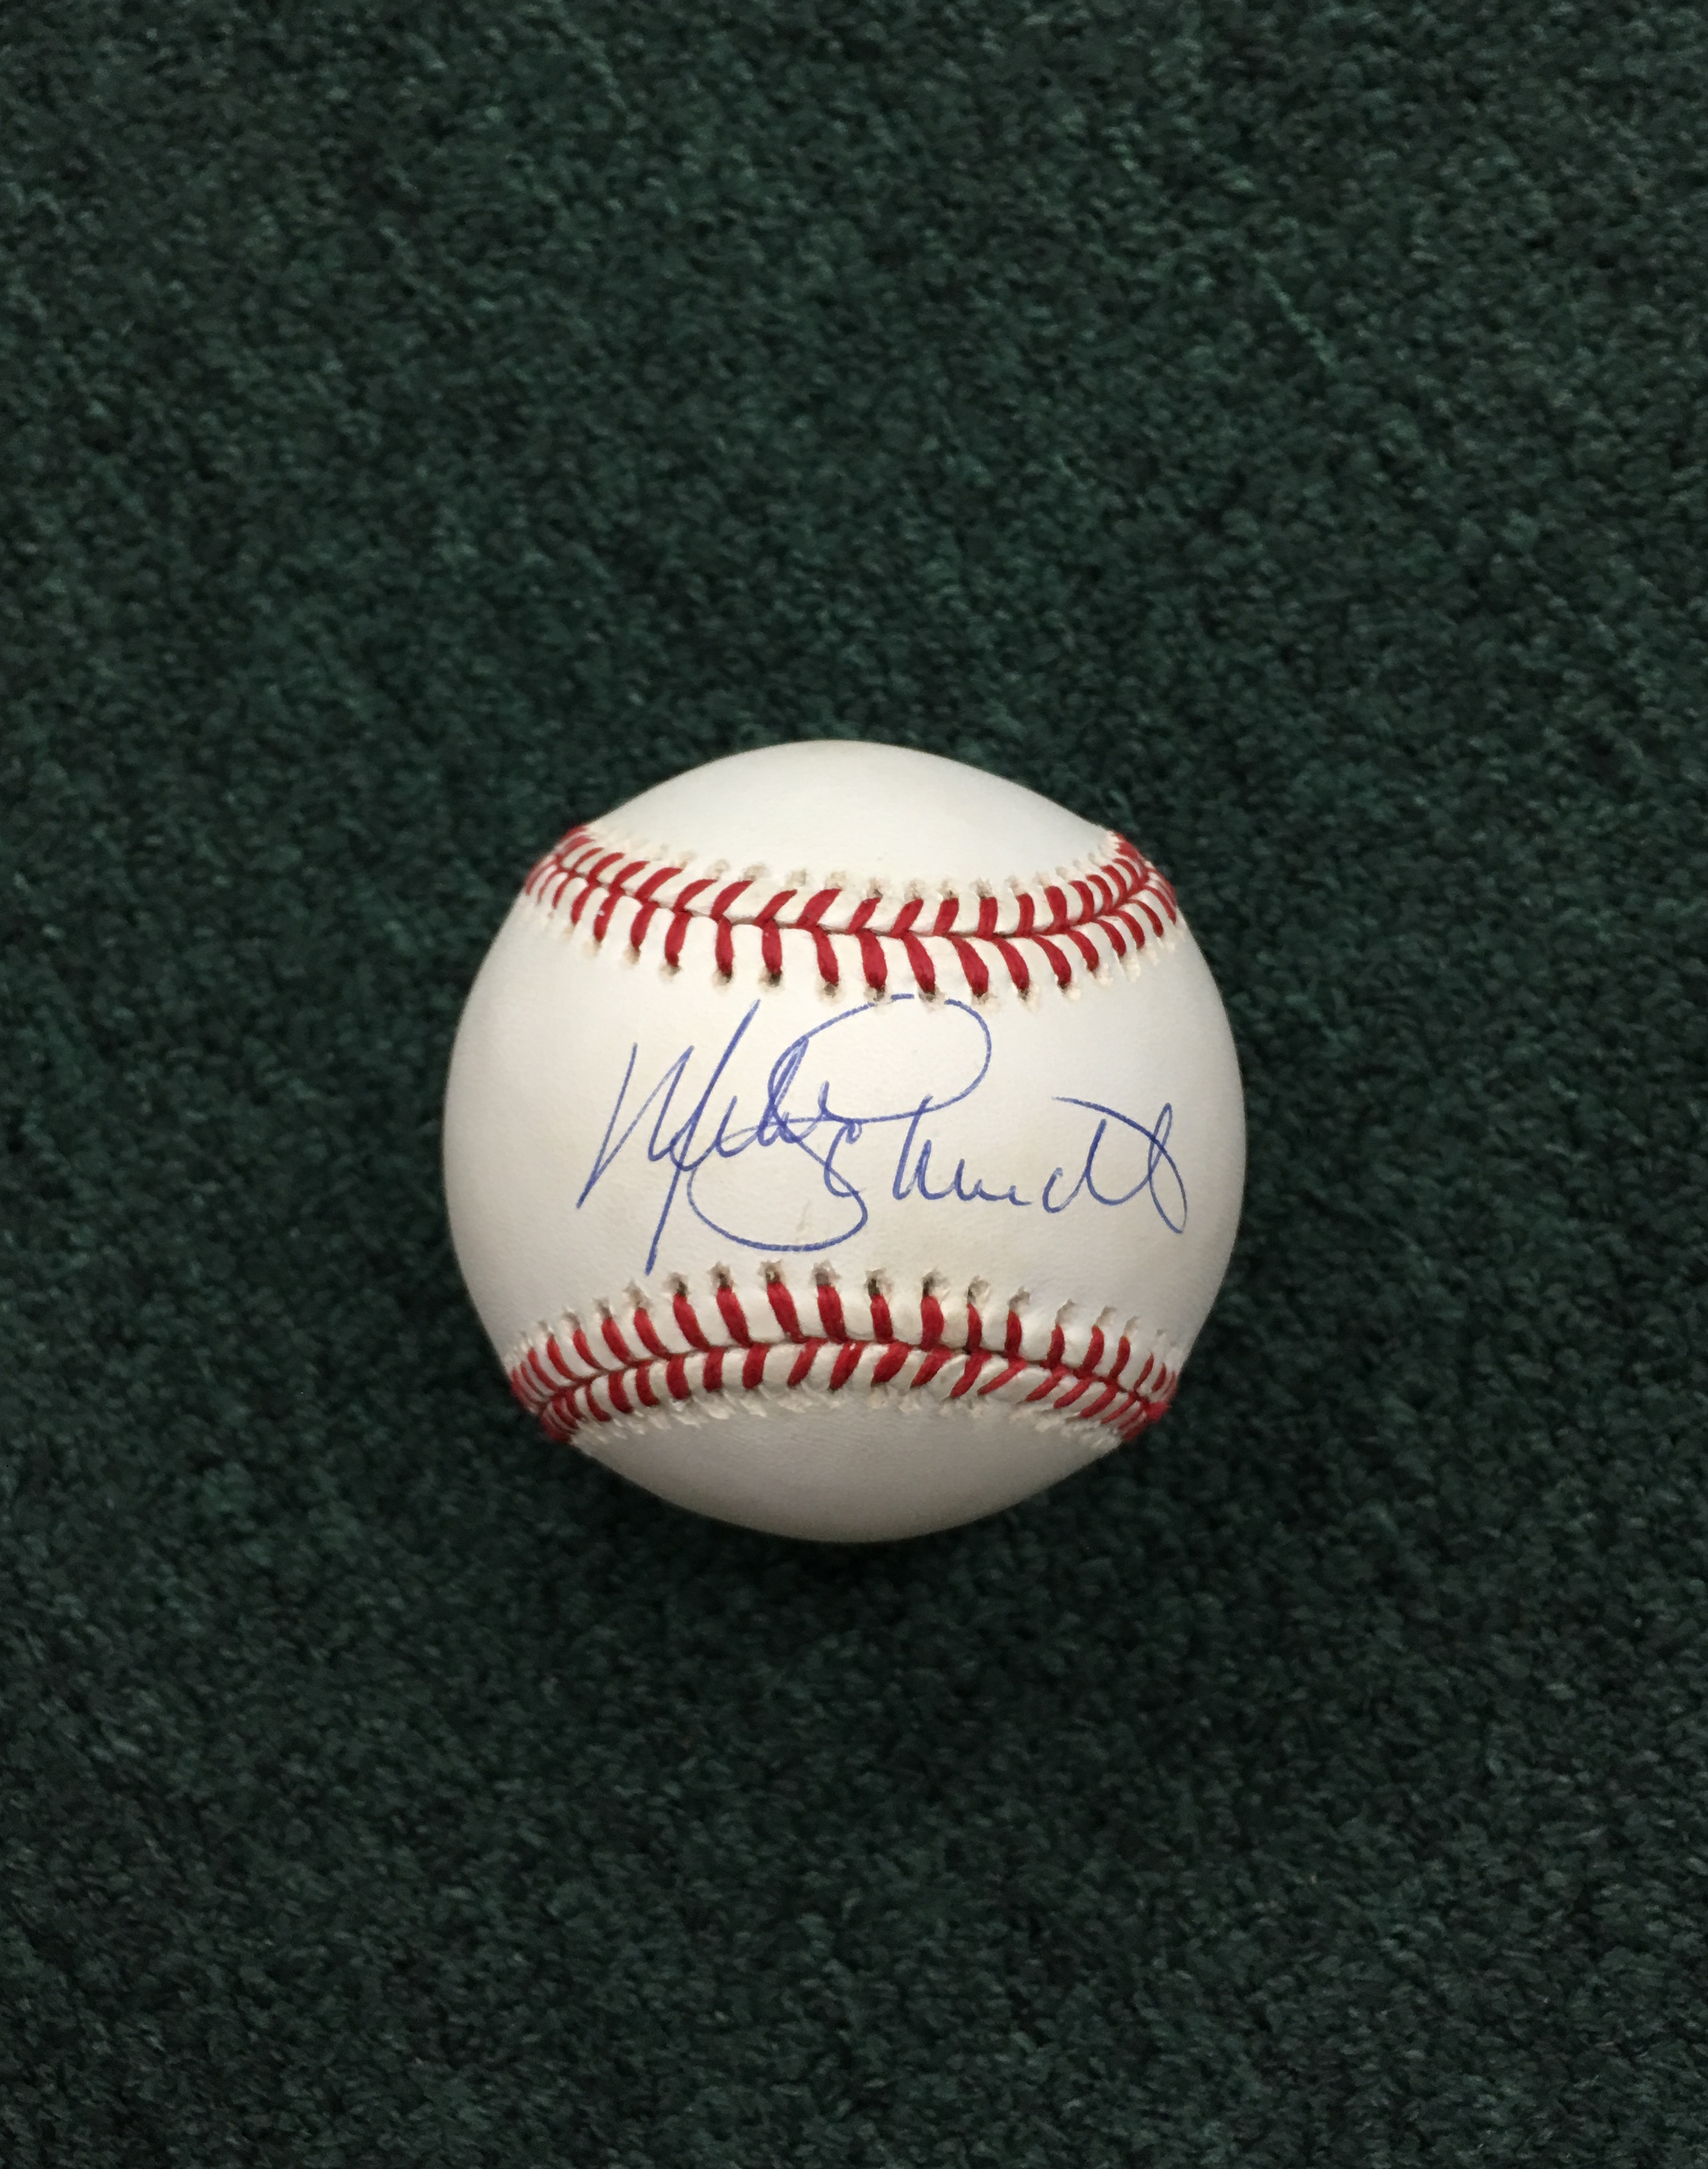 Mike Schmidt signed baseball